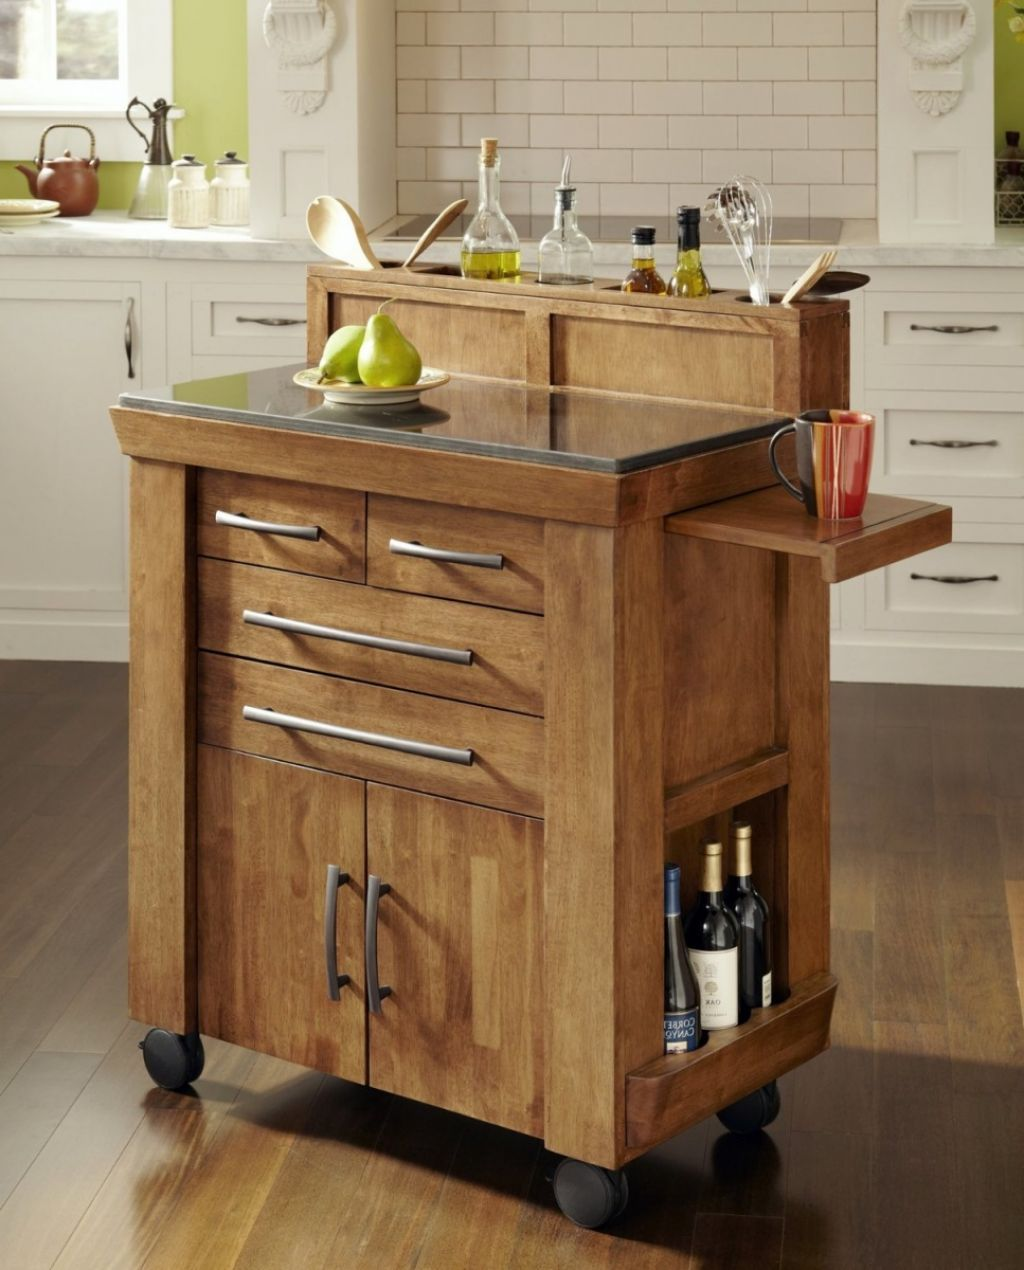 Mobile Kitchen Island Units Portable kitchen islands on wheels kitchen pinterest portable portable kitchen islands on wheels workwithnaturefo